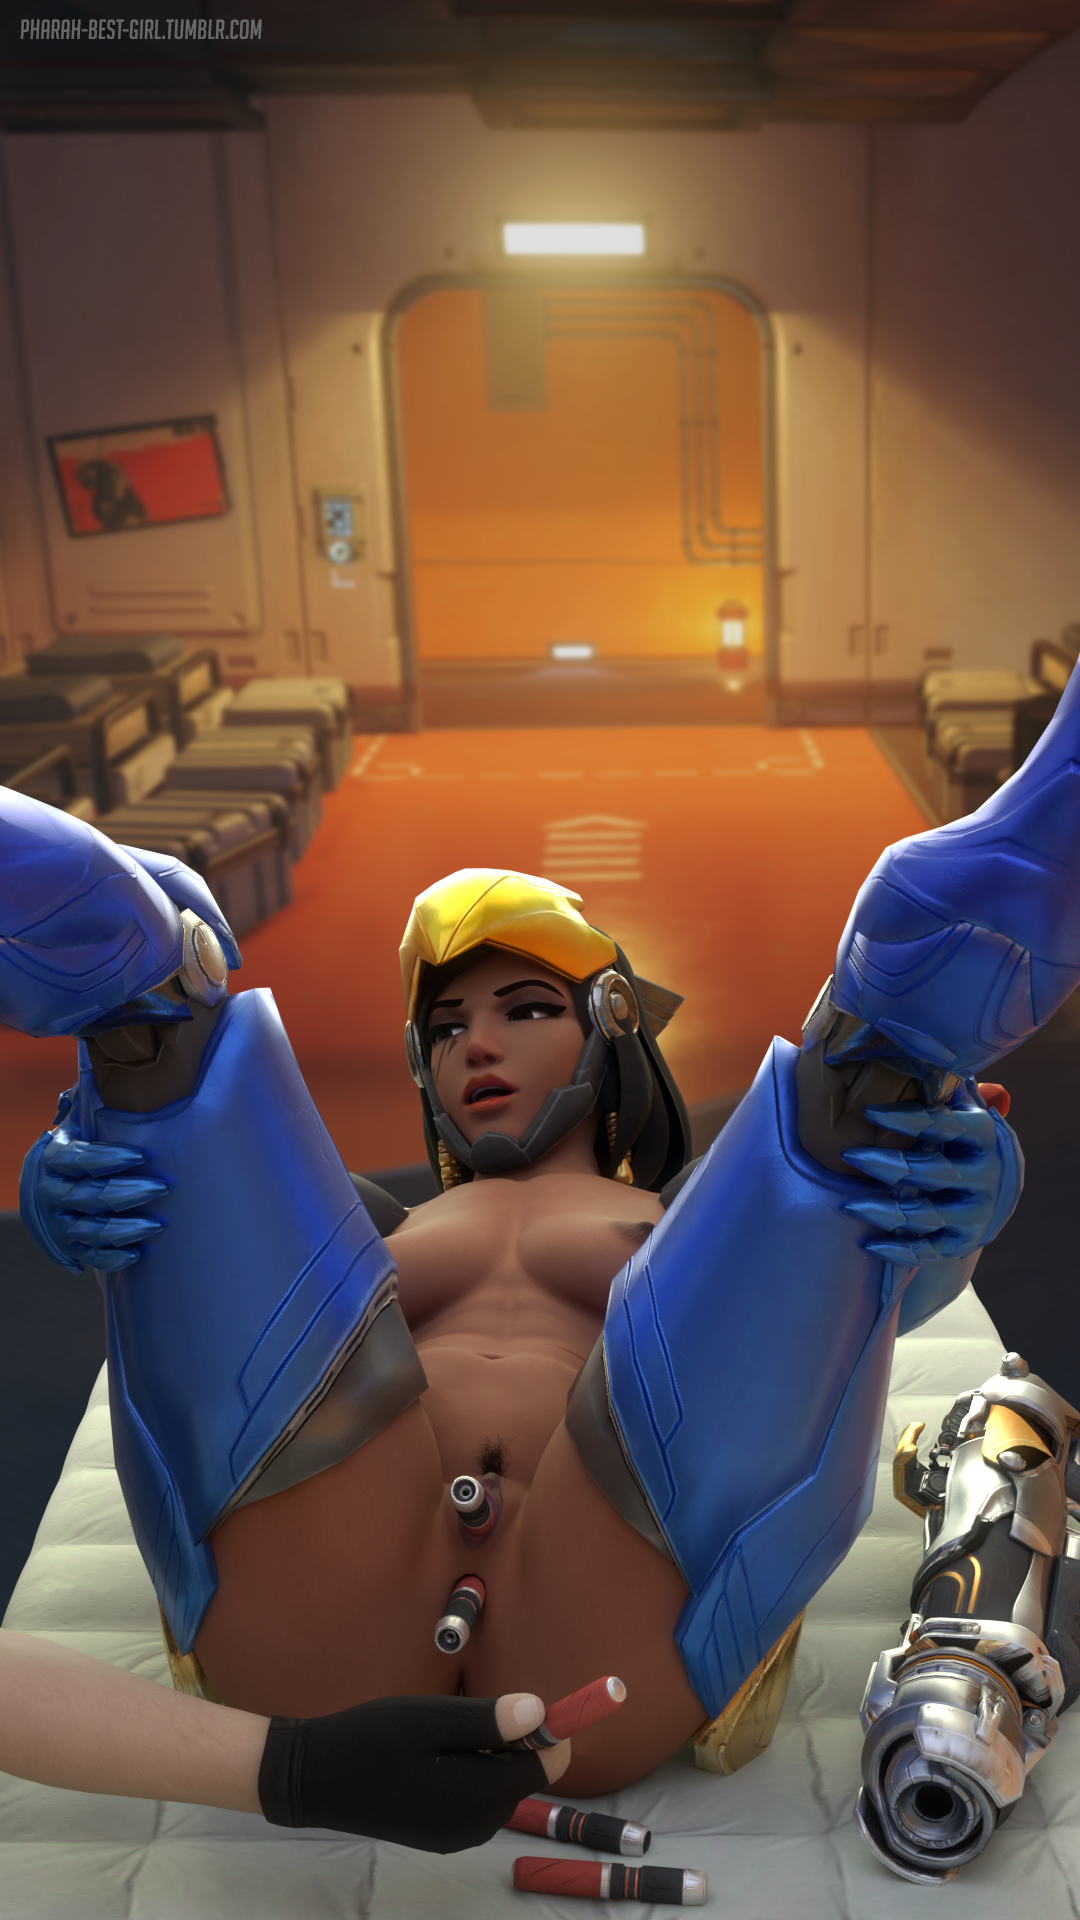 2400944 - Overlook Pharah